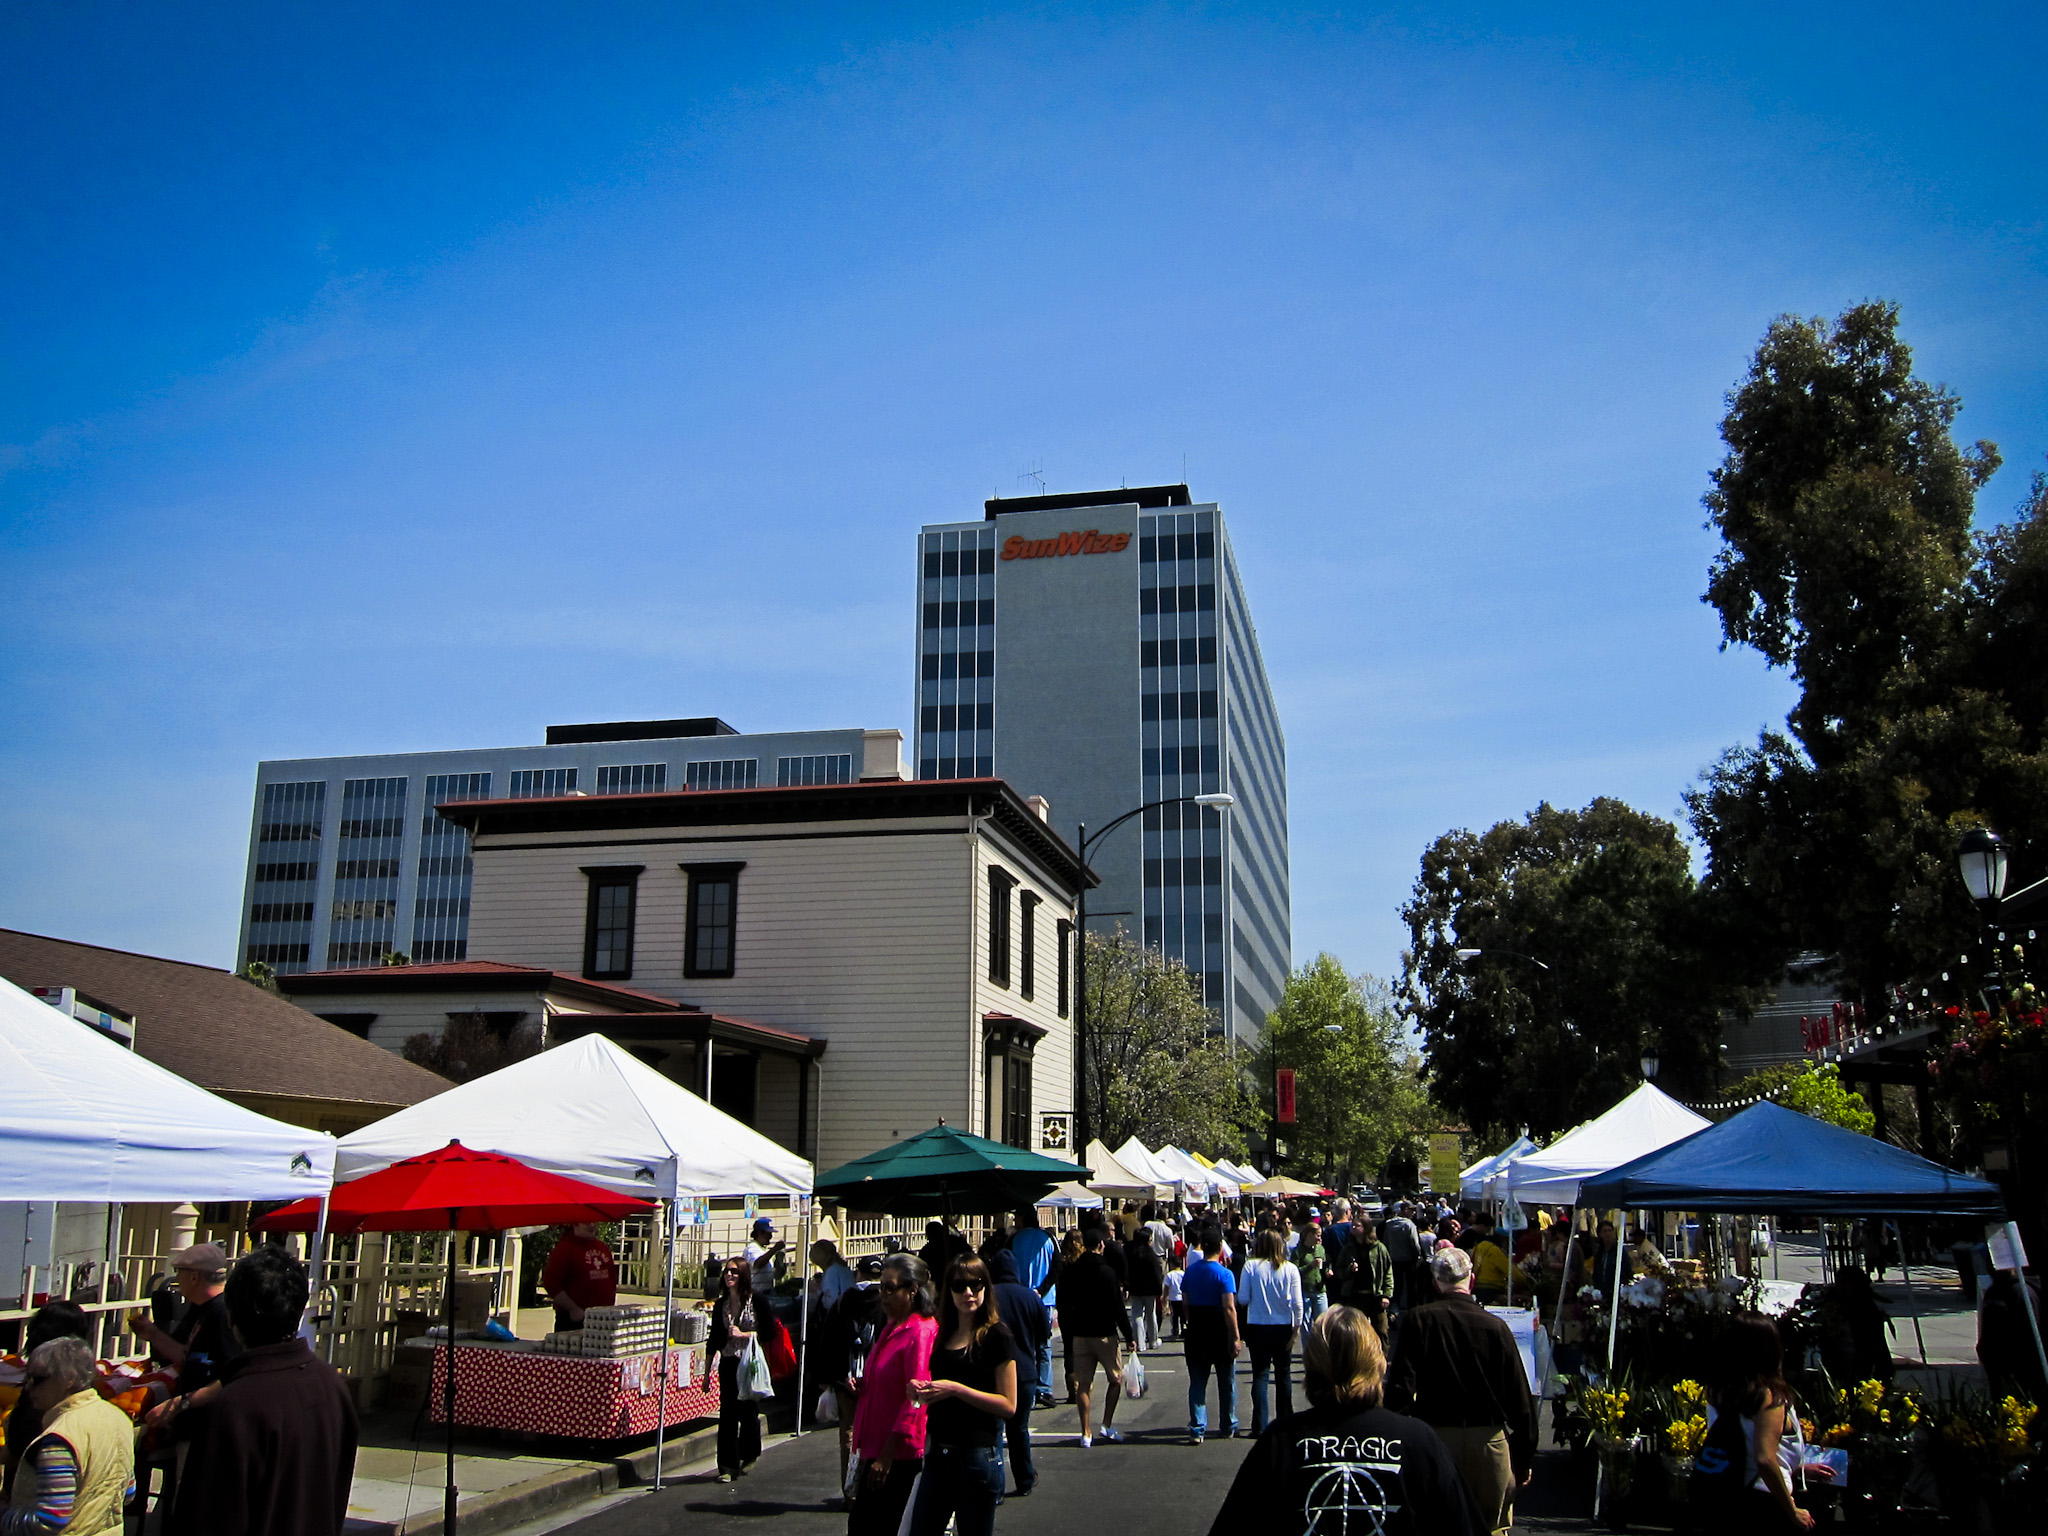 Photo: San Pedro Square Market-Great family dining and entertainment in downtown San Jose.Unique restaurants,farmers market and live music.Catch Enjoy lunch or brunch in the Plaza of the Peralta Adobe. Experience the Farmer's market every Saturday.San Pedro Square Market is a fun place to spend time with family and friends.